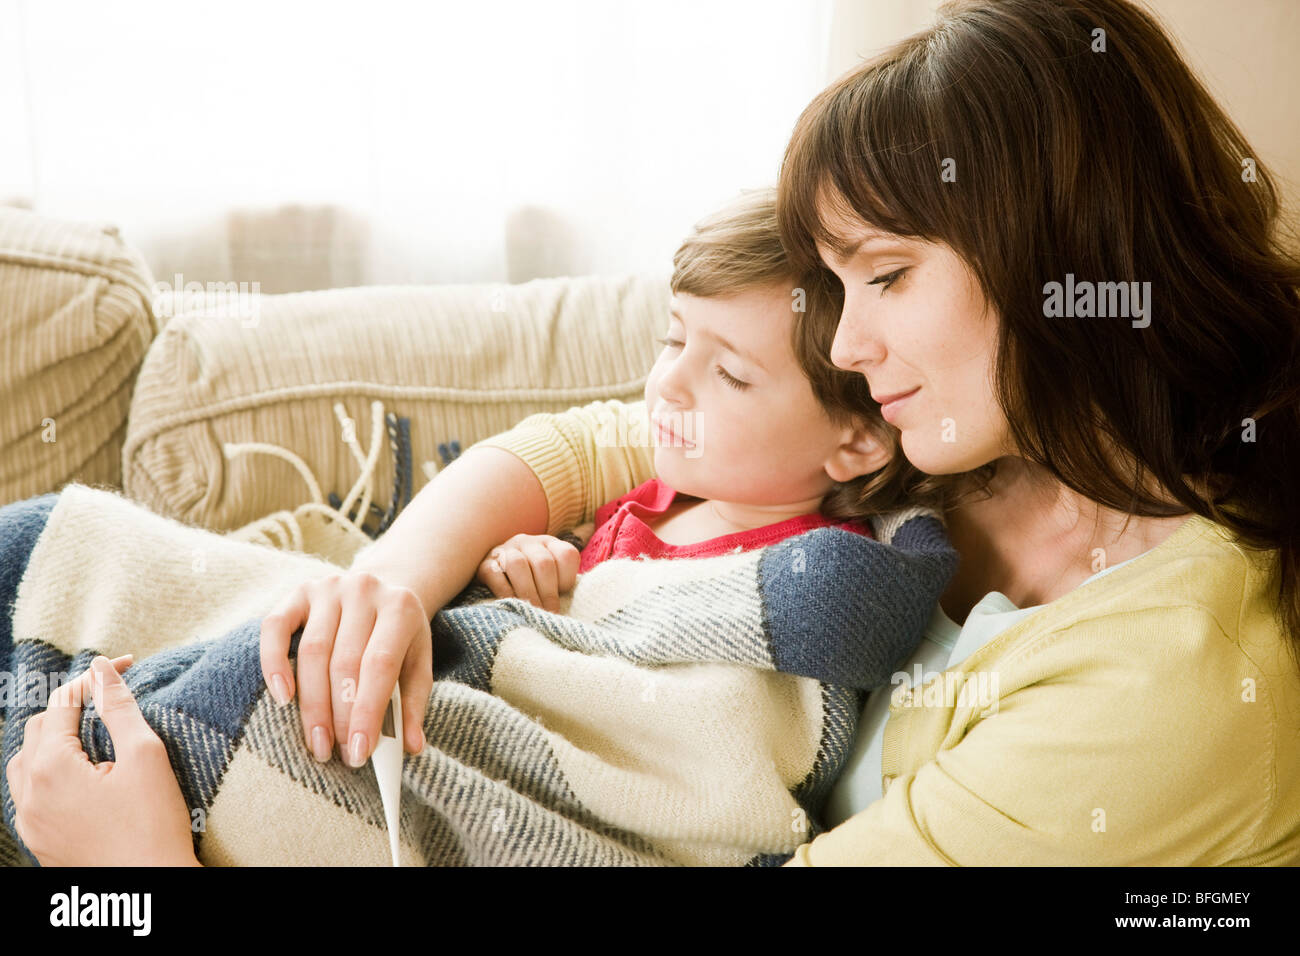 mother checking daughter temperature - Stock Image